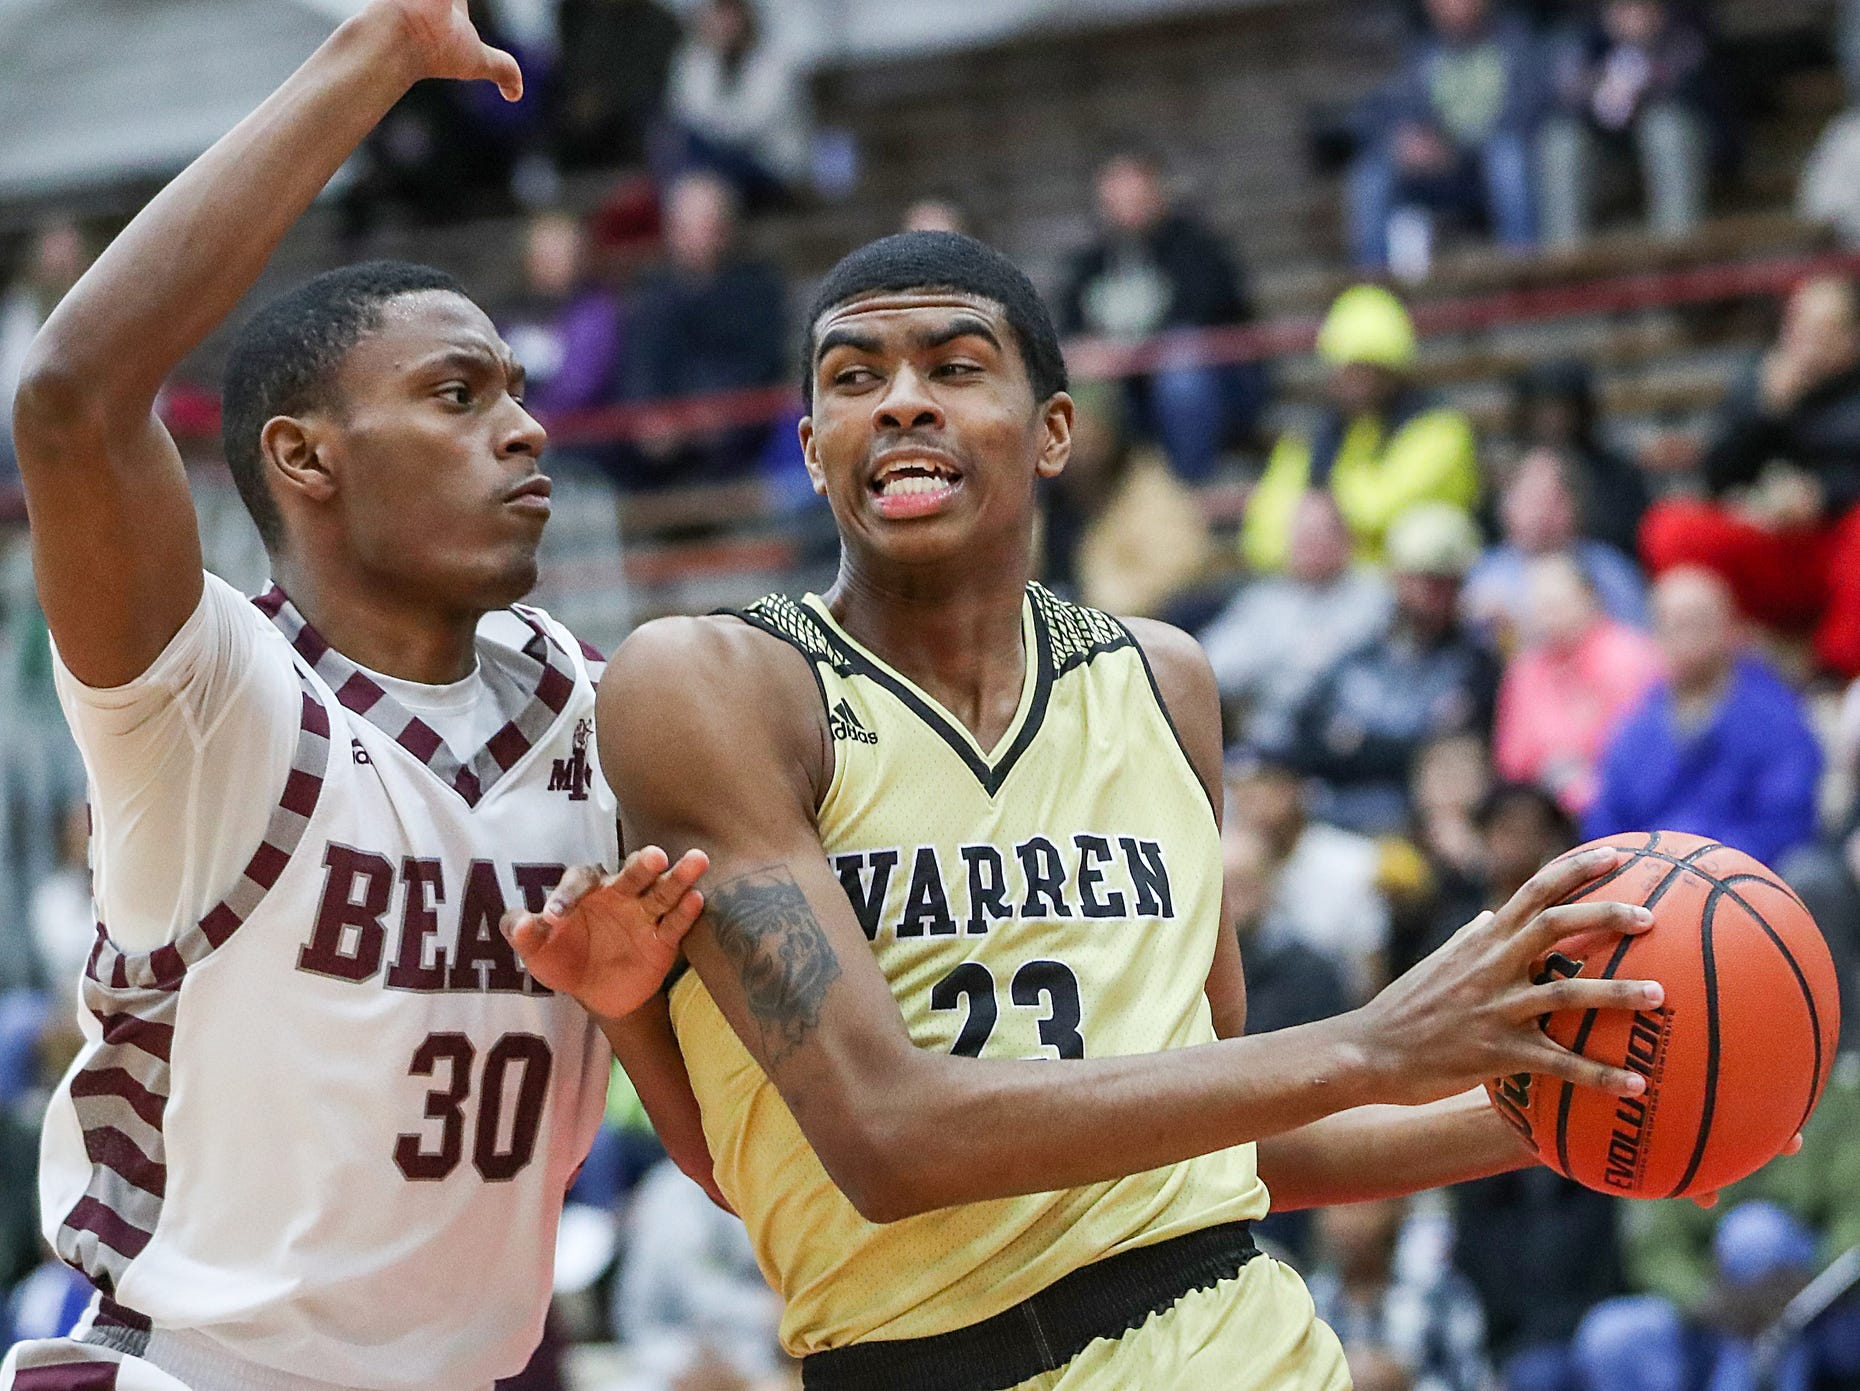 Lawrence Central Bears Wesley Jordan (30) guards Warren Central Warriors forward Jakobie Robinson (23) in the first half of Marion County tournament finals at Southport High School in Indianapolis, Monday, Jan. 14, 2019.